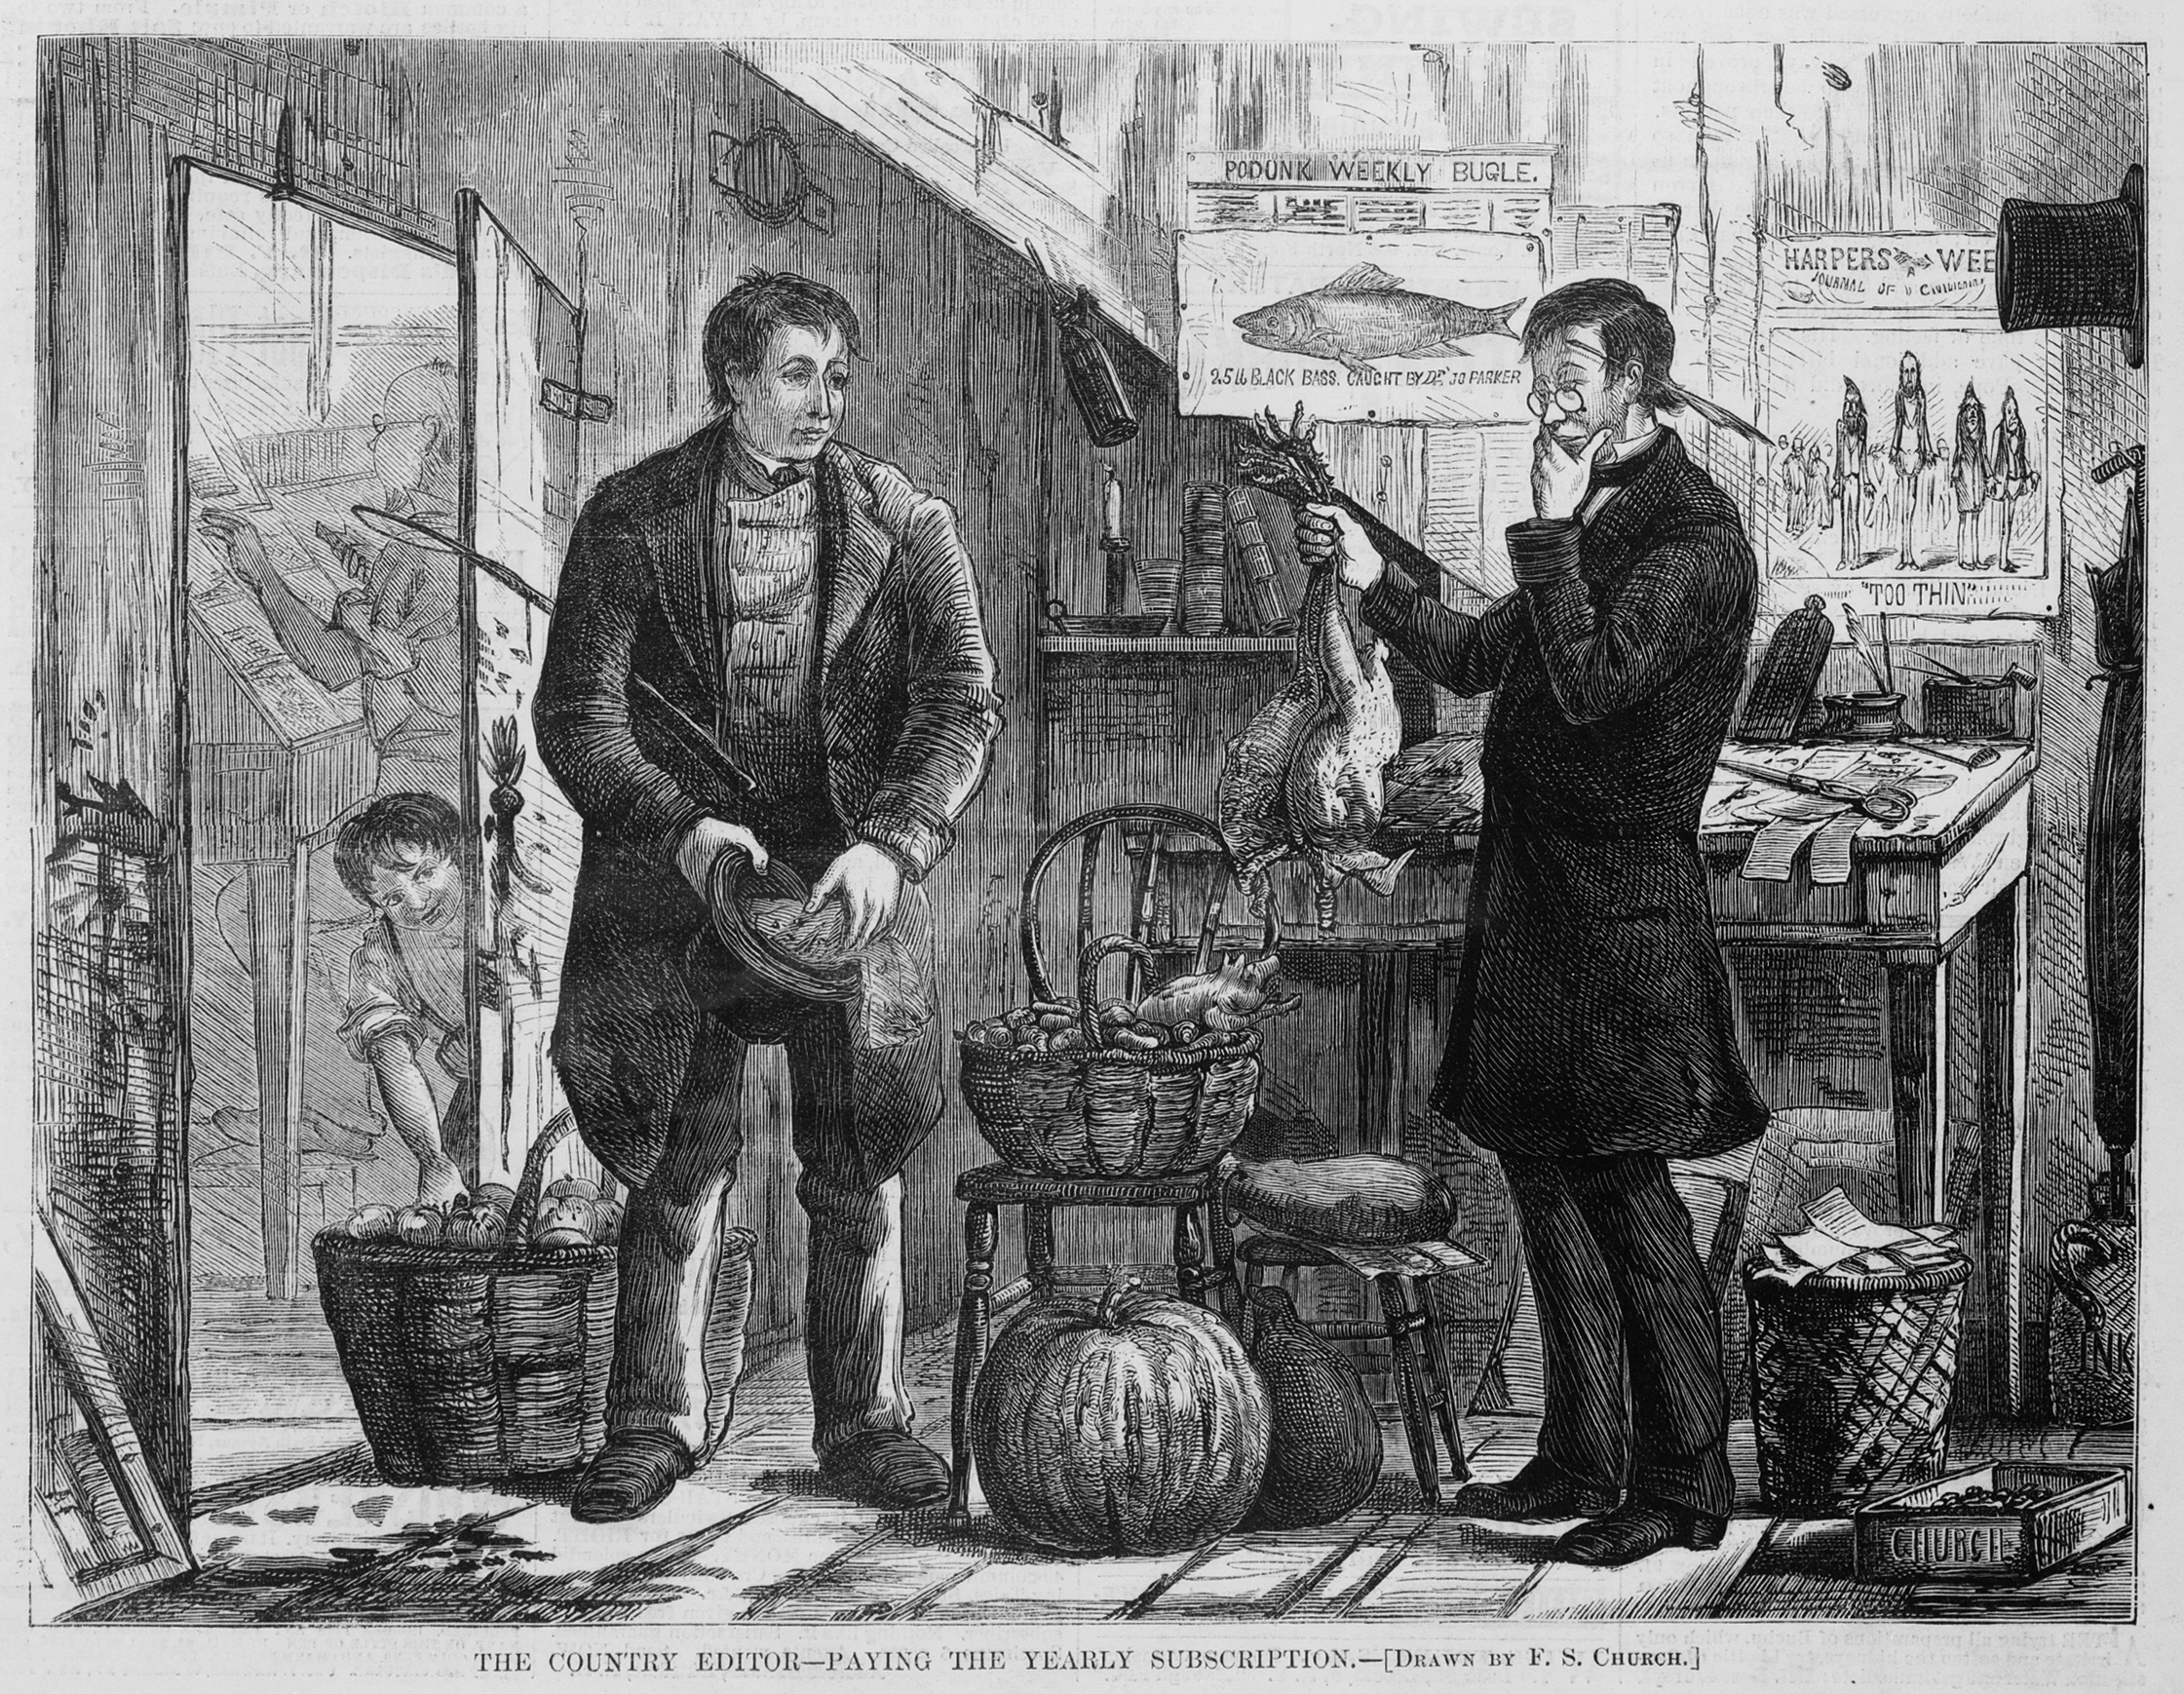 "A newspaper illustration depicting a man engaging in barter, paying his yearly newspaper subscription to the ""Podunk Weekly Bugle"" with various farm produce."